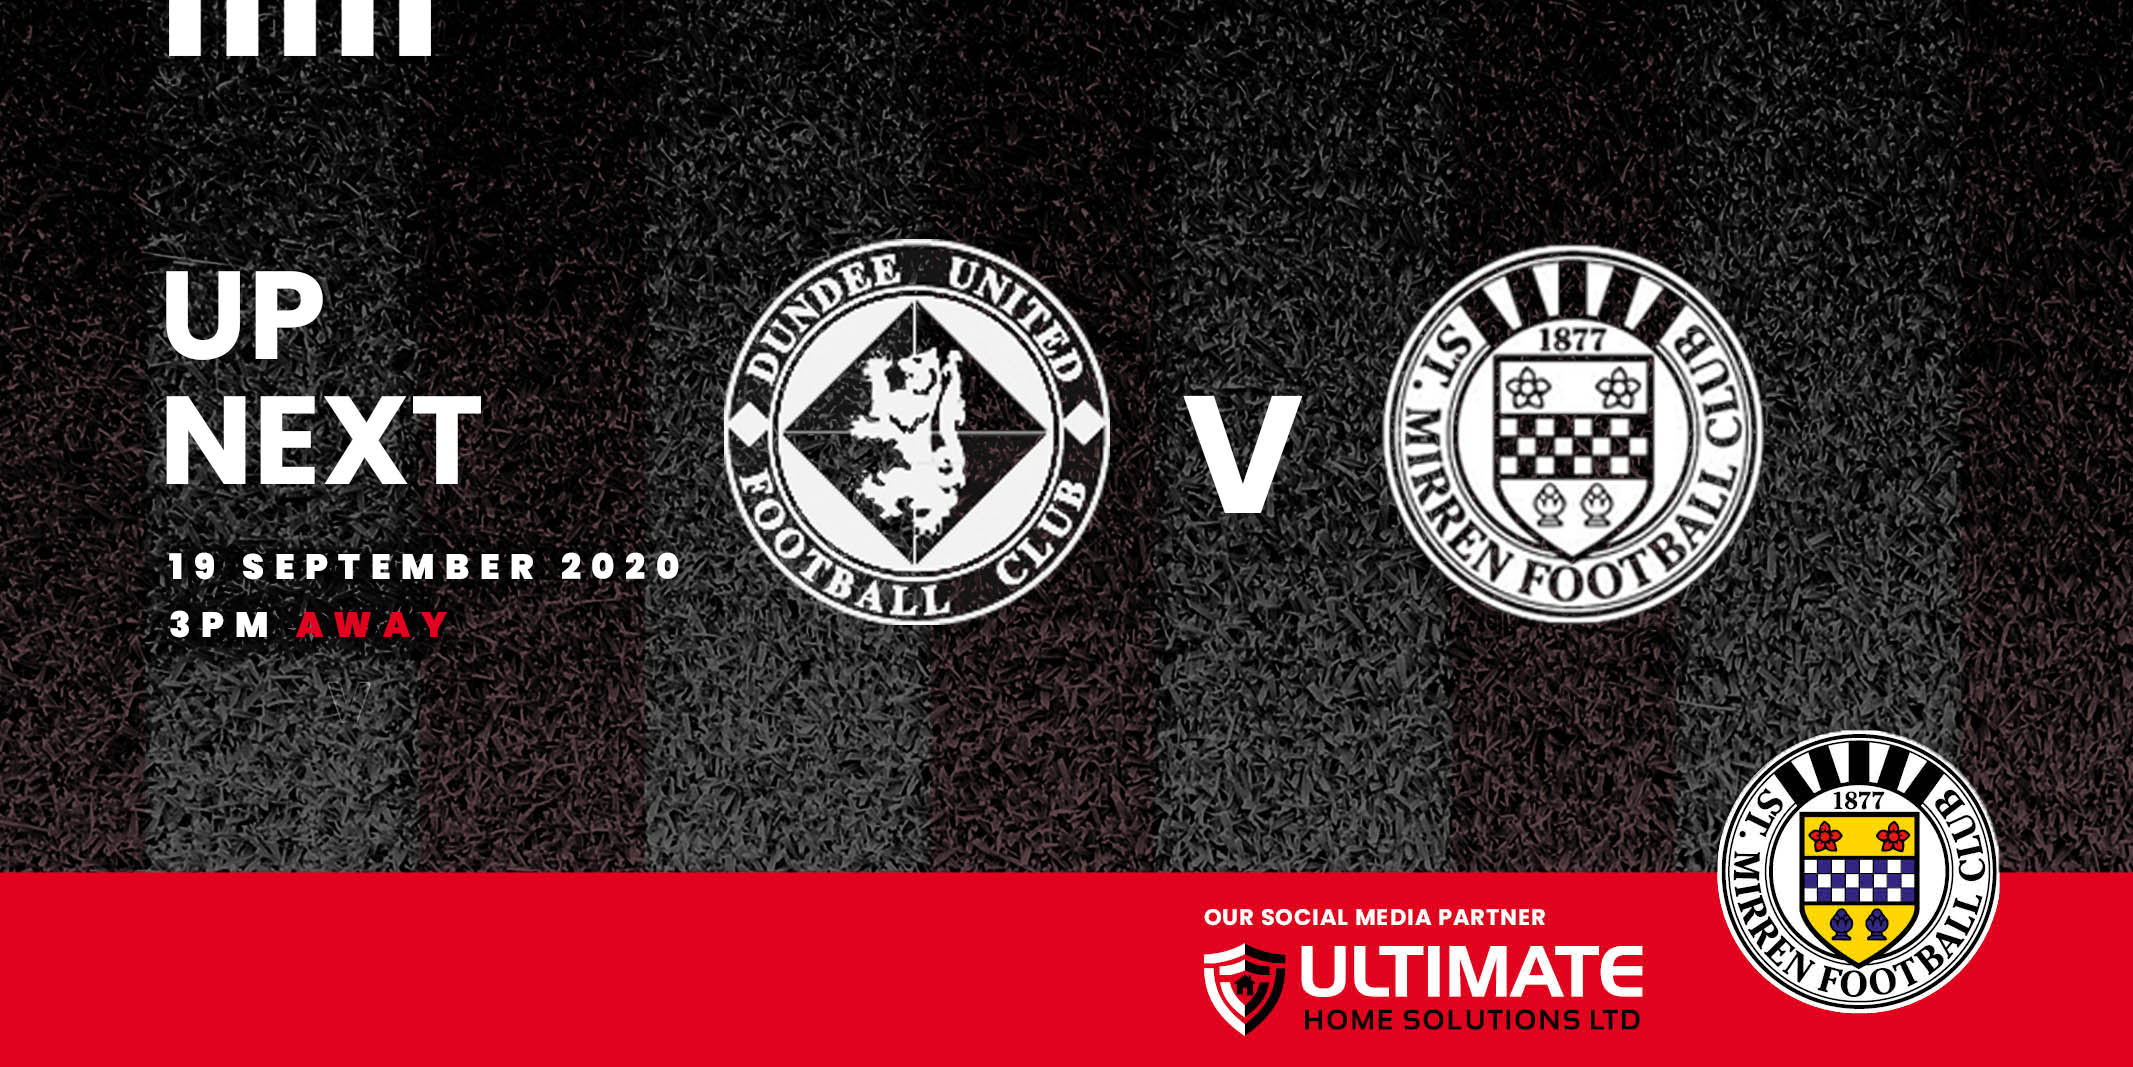 Up next: Dundee United v St Mirren (19th September)